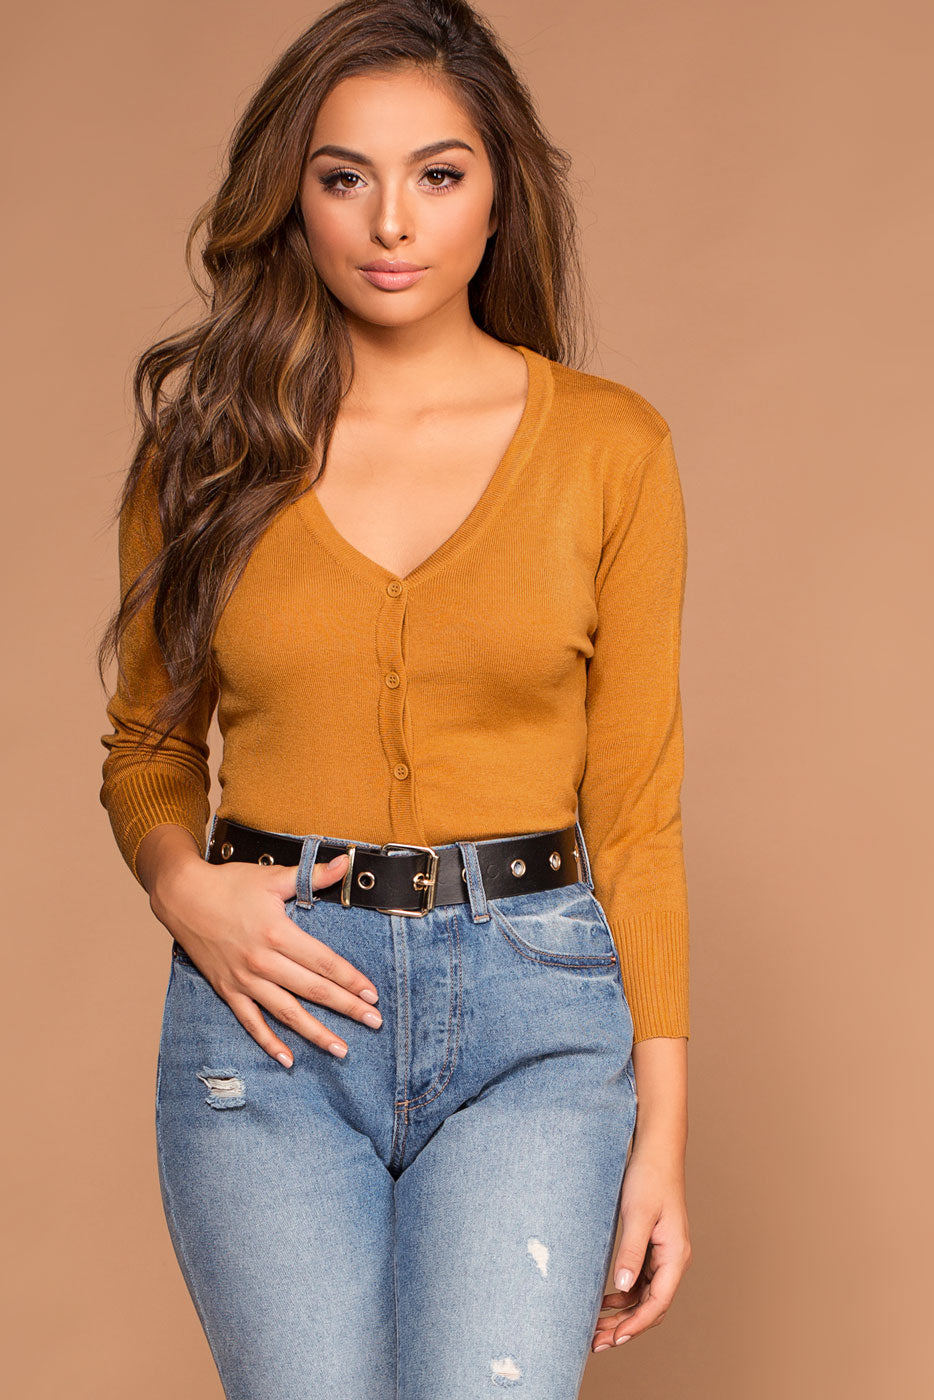 1af461144e0 Roxanne V-Neck Button-Up Caramel Sweater Cardigan Top